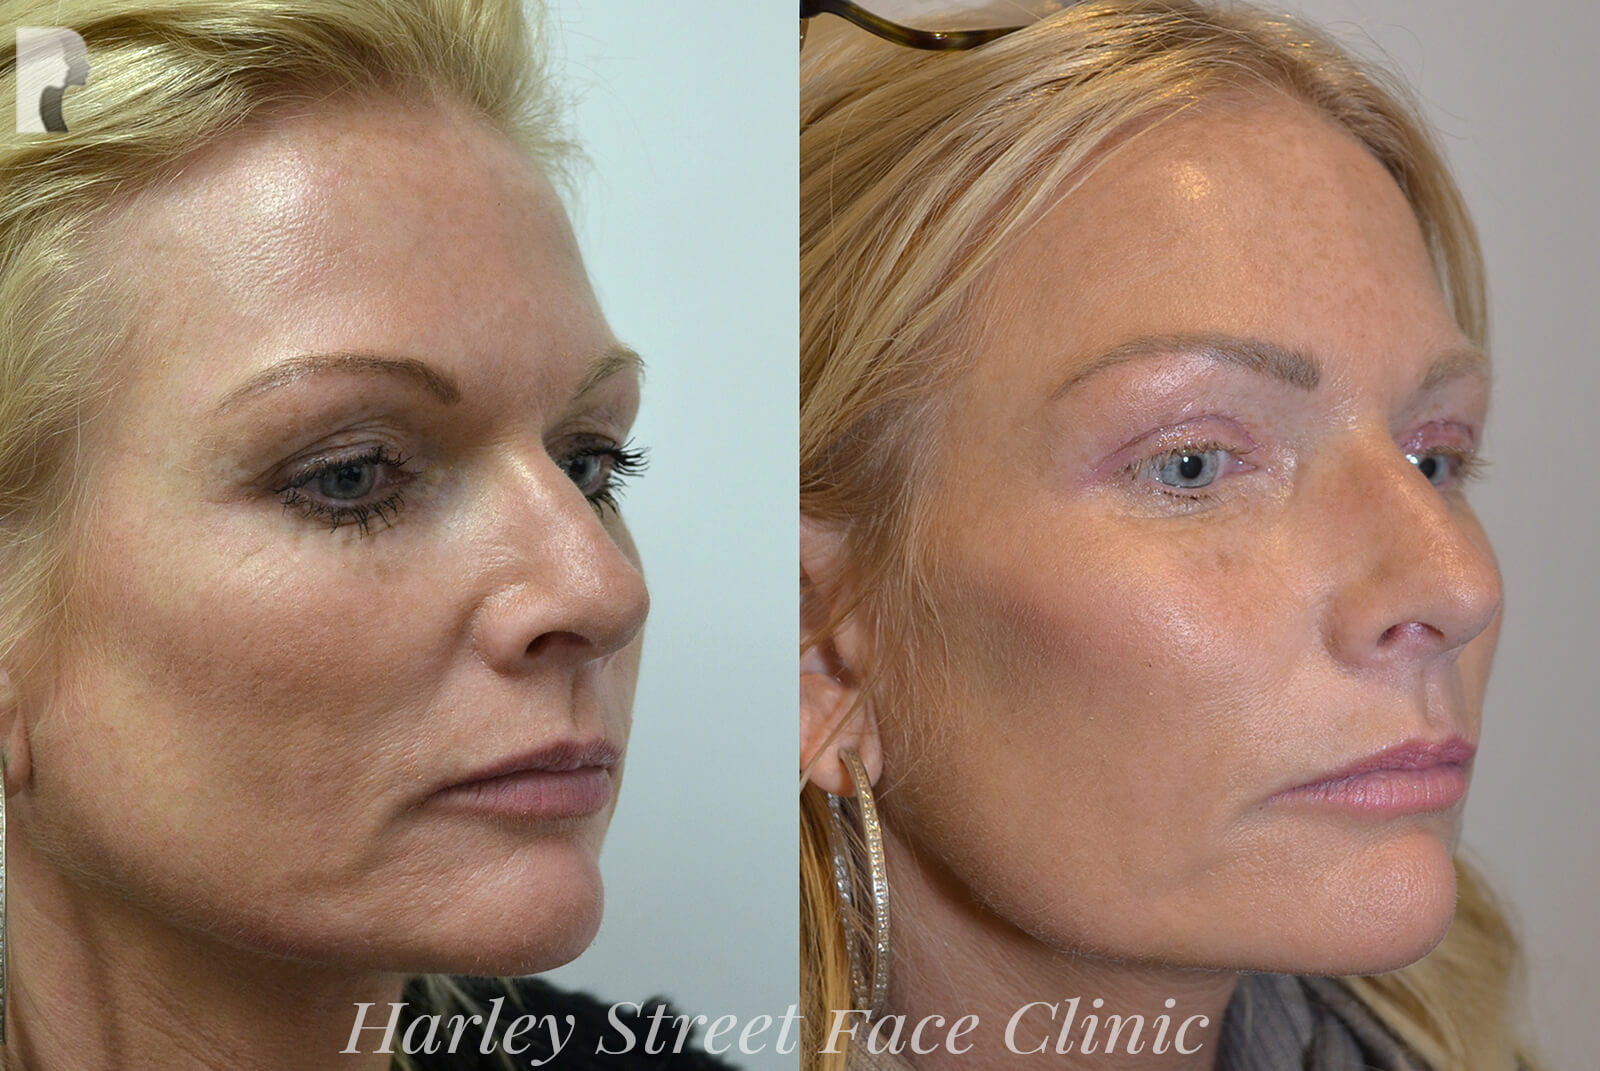 Minimally invasive or non-invasive procedures - female face, before and after treatment